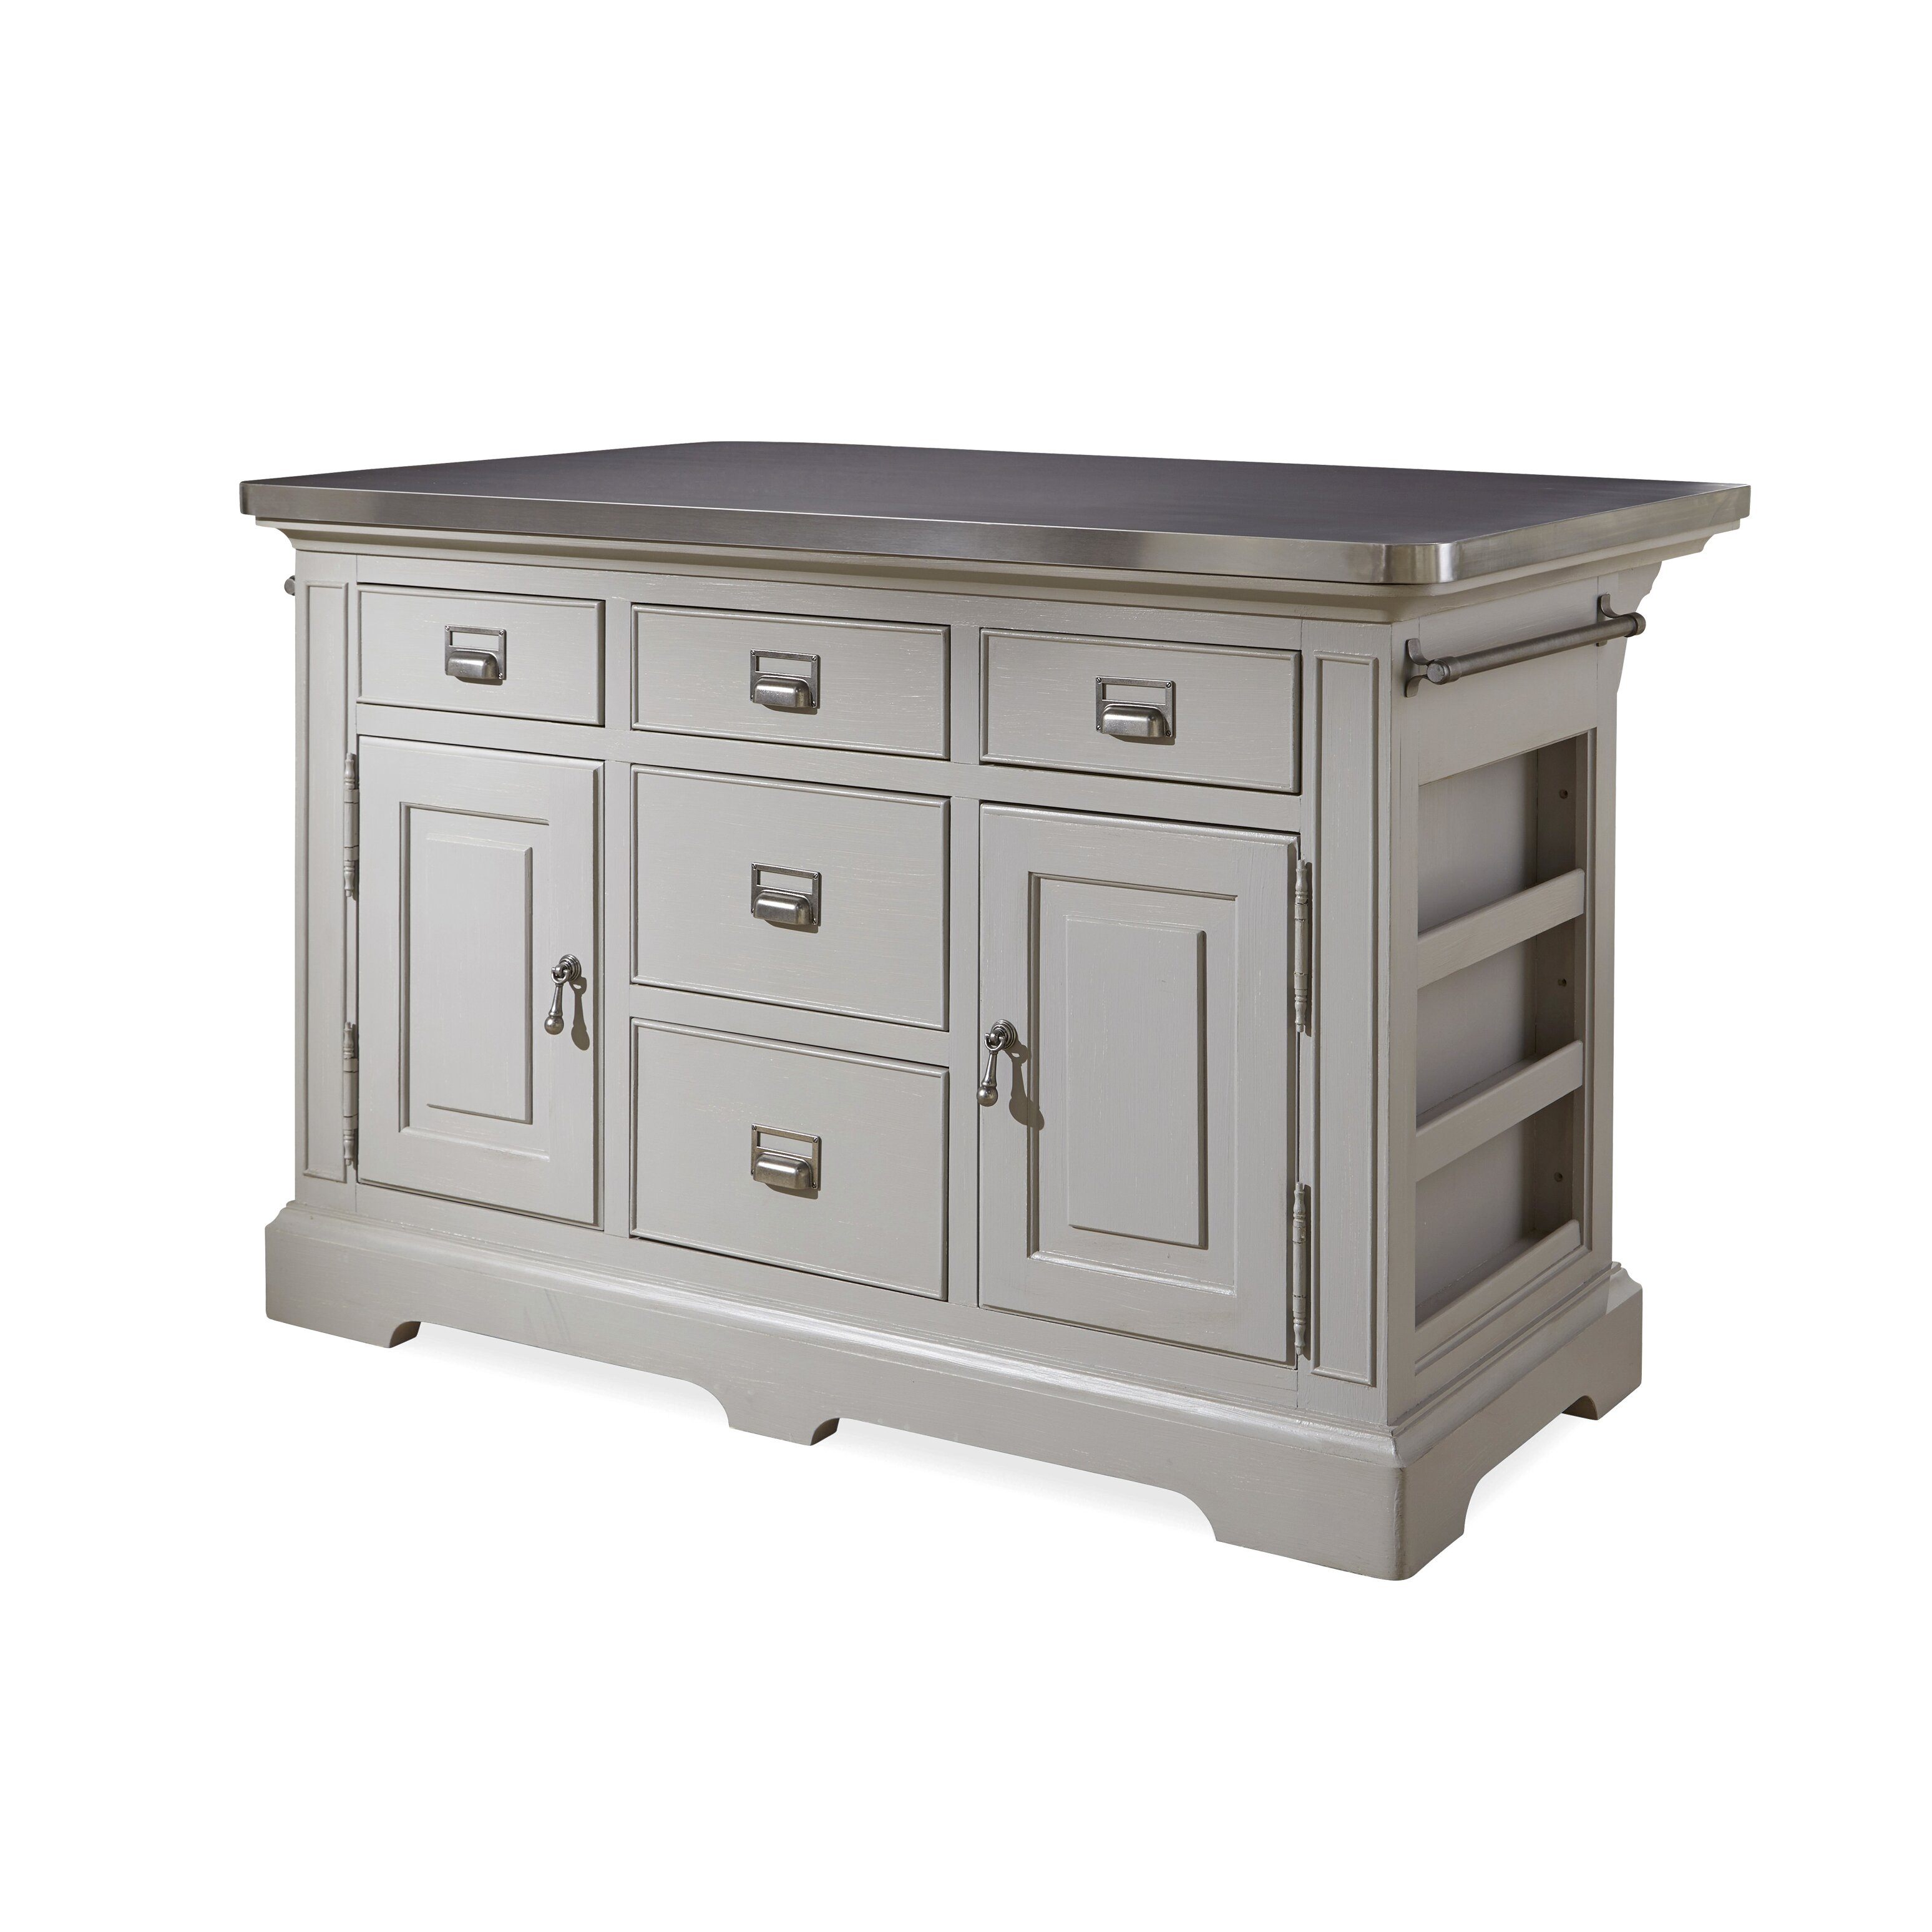 Paula Deen Bedroom Furniture Collection Paula Deen Home Dogwood Kitchen Island With Stainless Steel